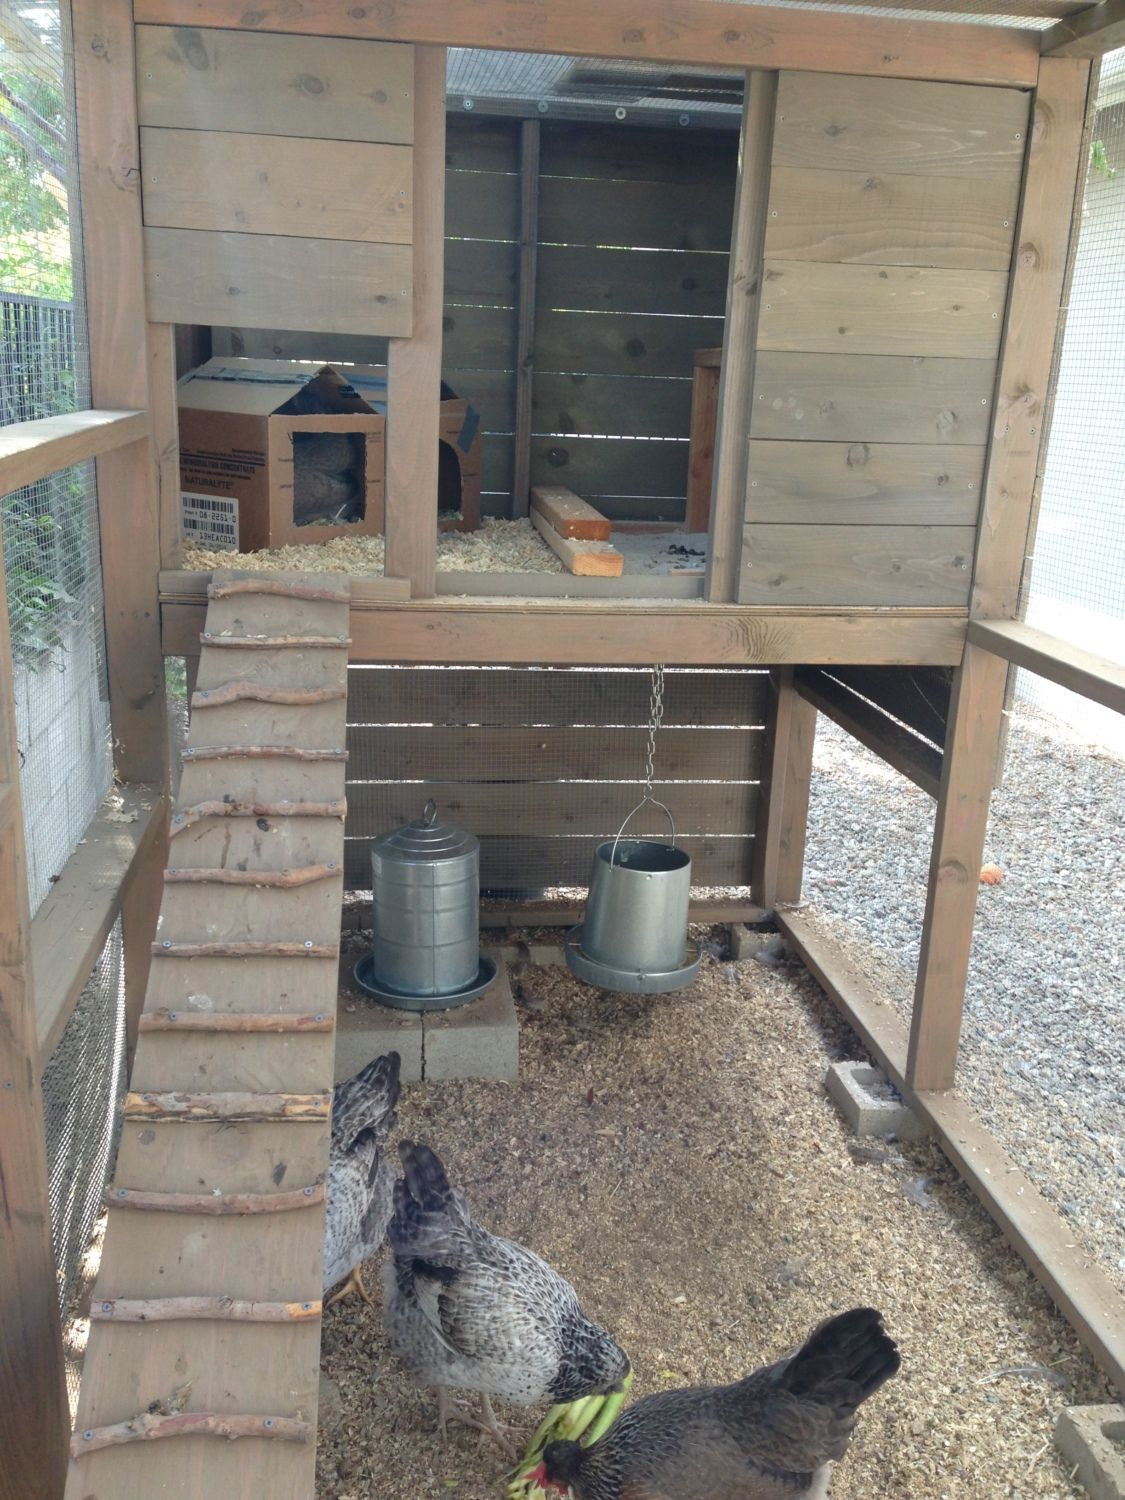 Closer, will still need the interior door before winter and permanent nest boxes